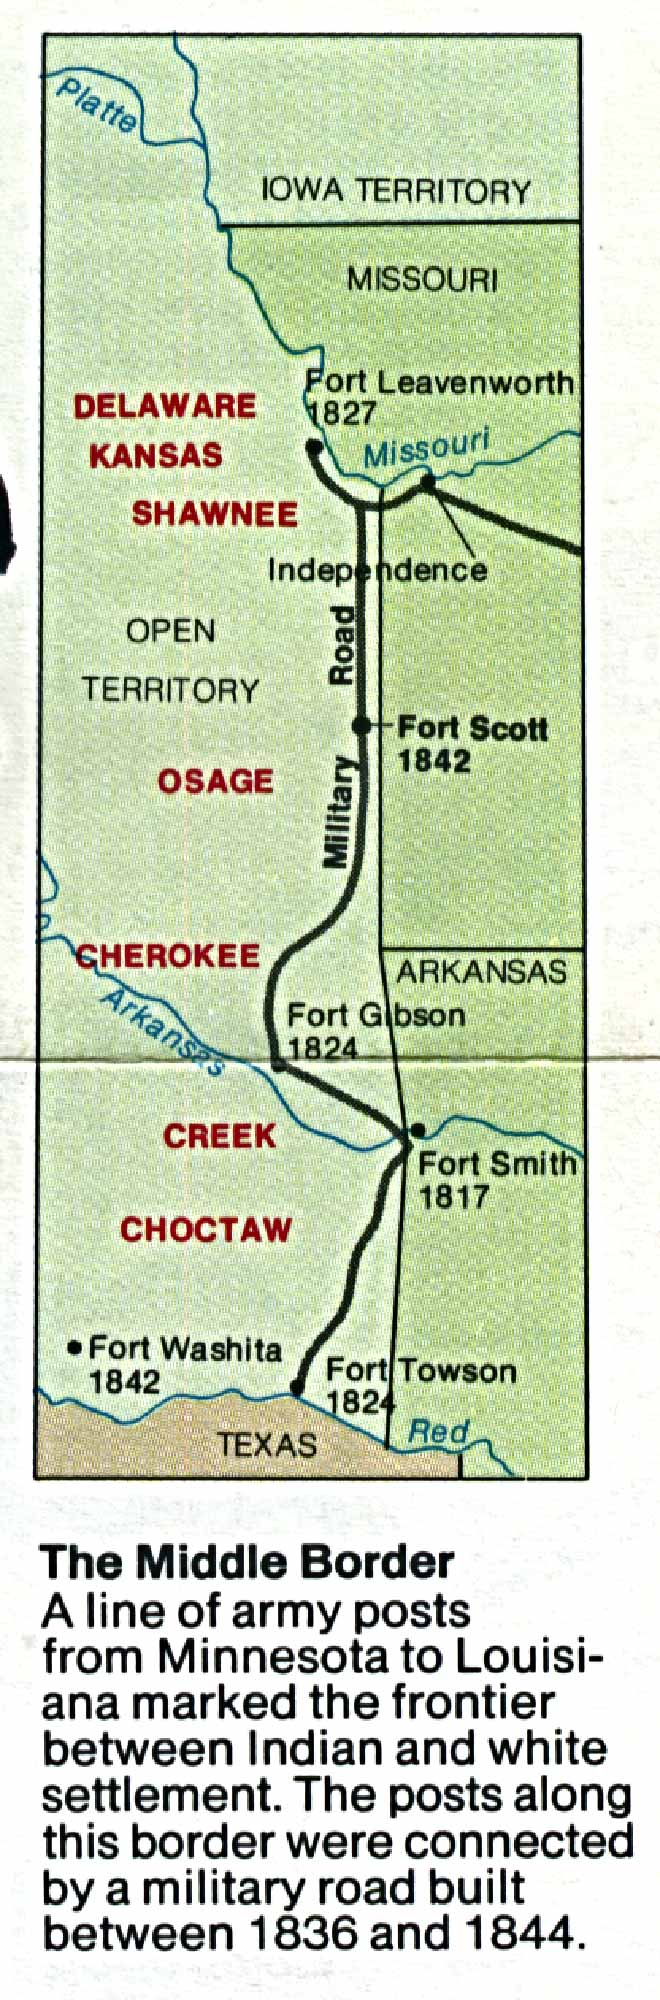 Maps of United States National Parks, Monuments and Historic Sites Fort Scott National Historic Site [Kansas] (Area Map) 1993 (273K)